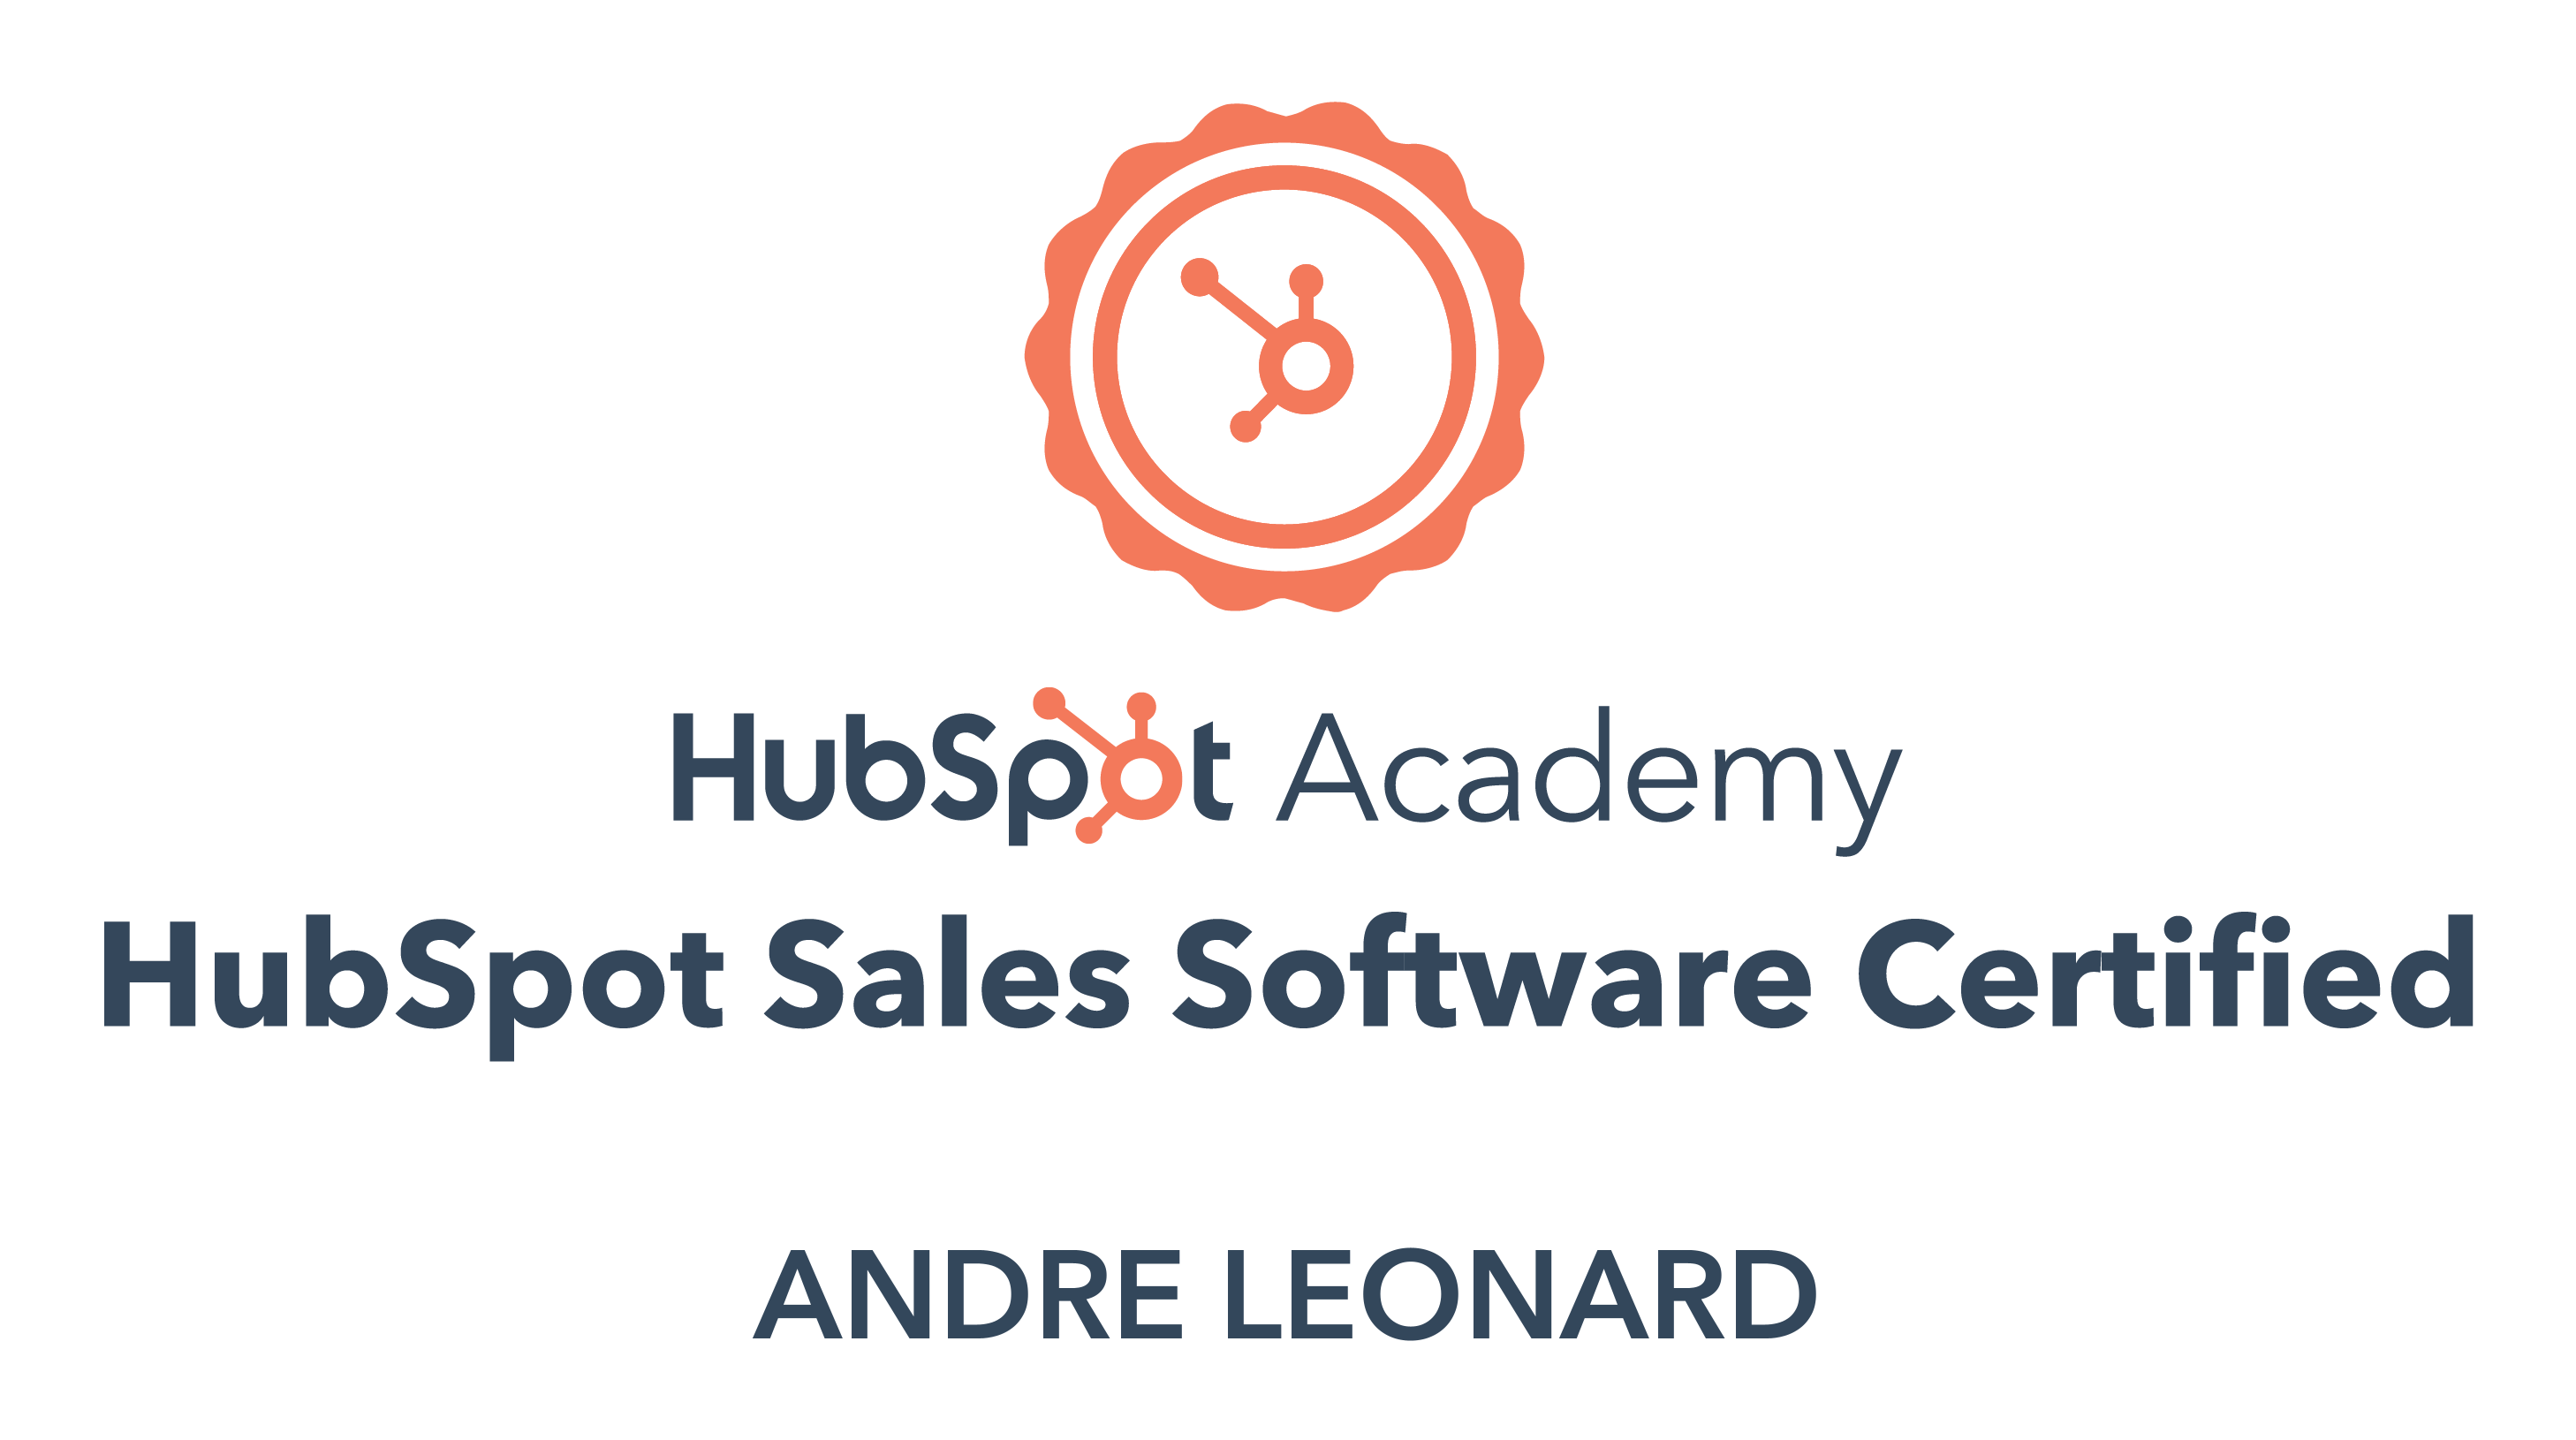 Andre - Sales Software